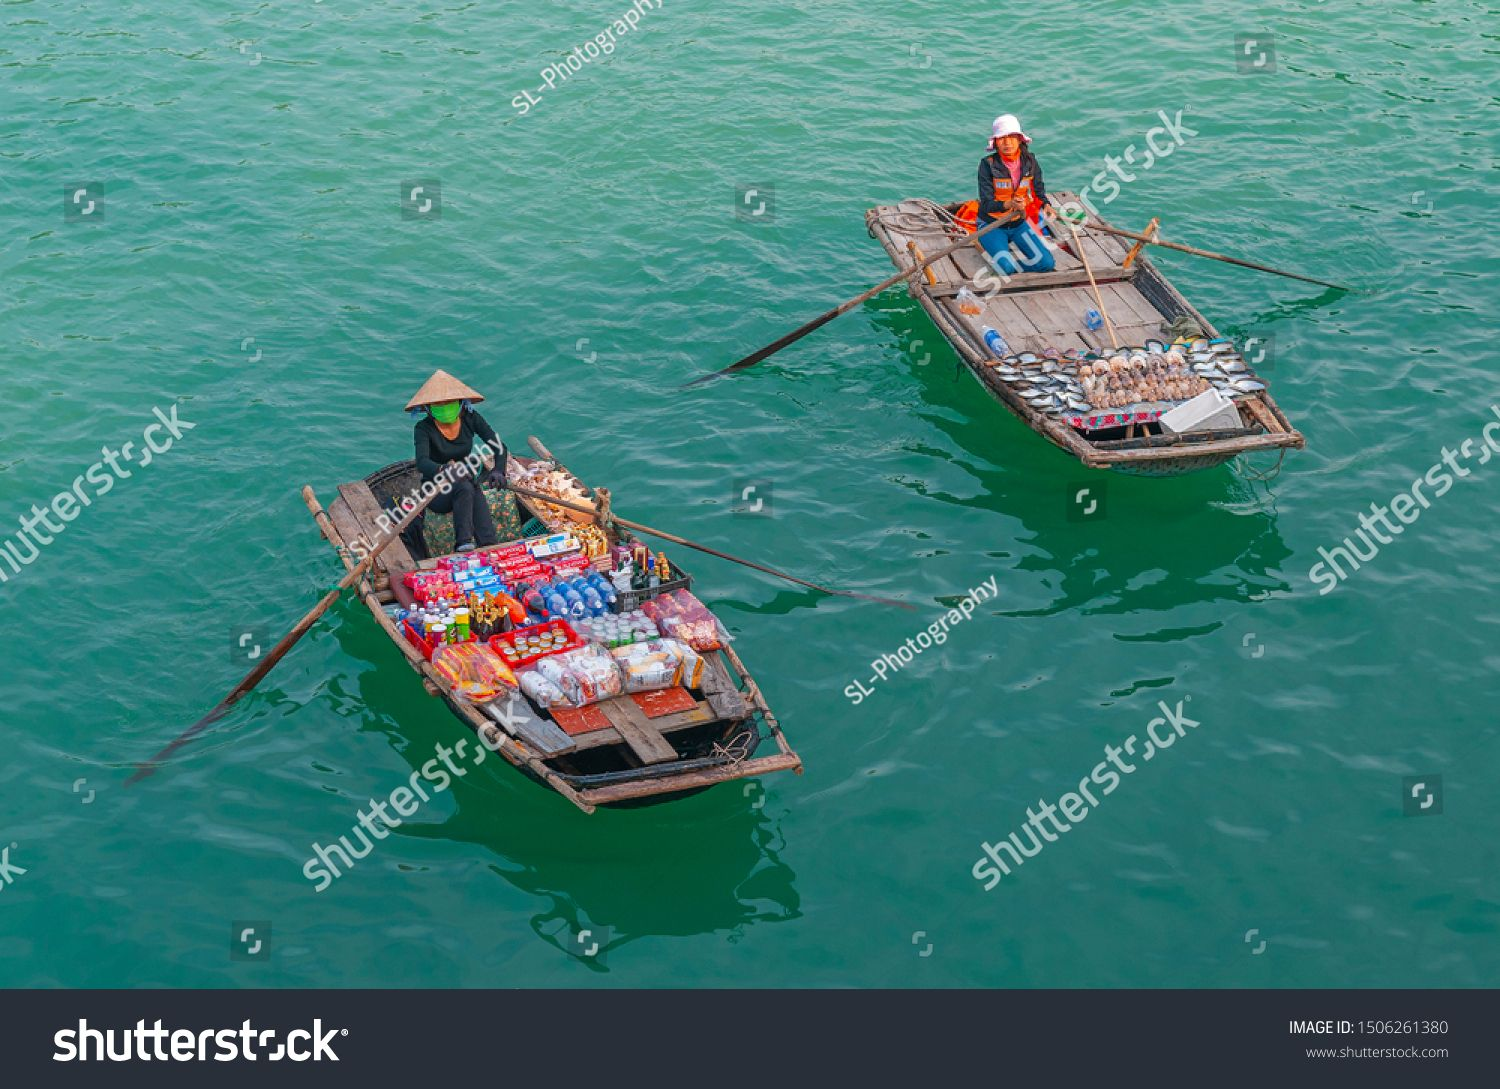 HALONG BAY, VIETNAM - NOVEMBER 23, 2009: Two local saleswomen in traditional boats selling food and drinks in the emerald waters of Halong Bay in North Vietnam. #Sponsored , #SPONSORED, #local#traditional#saleswomen#BAY